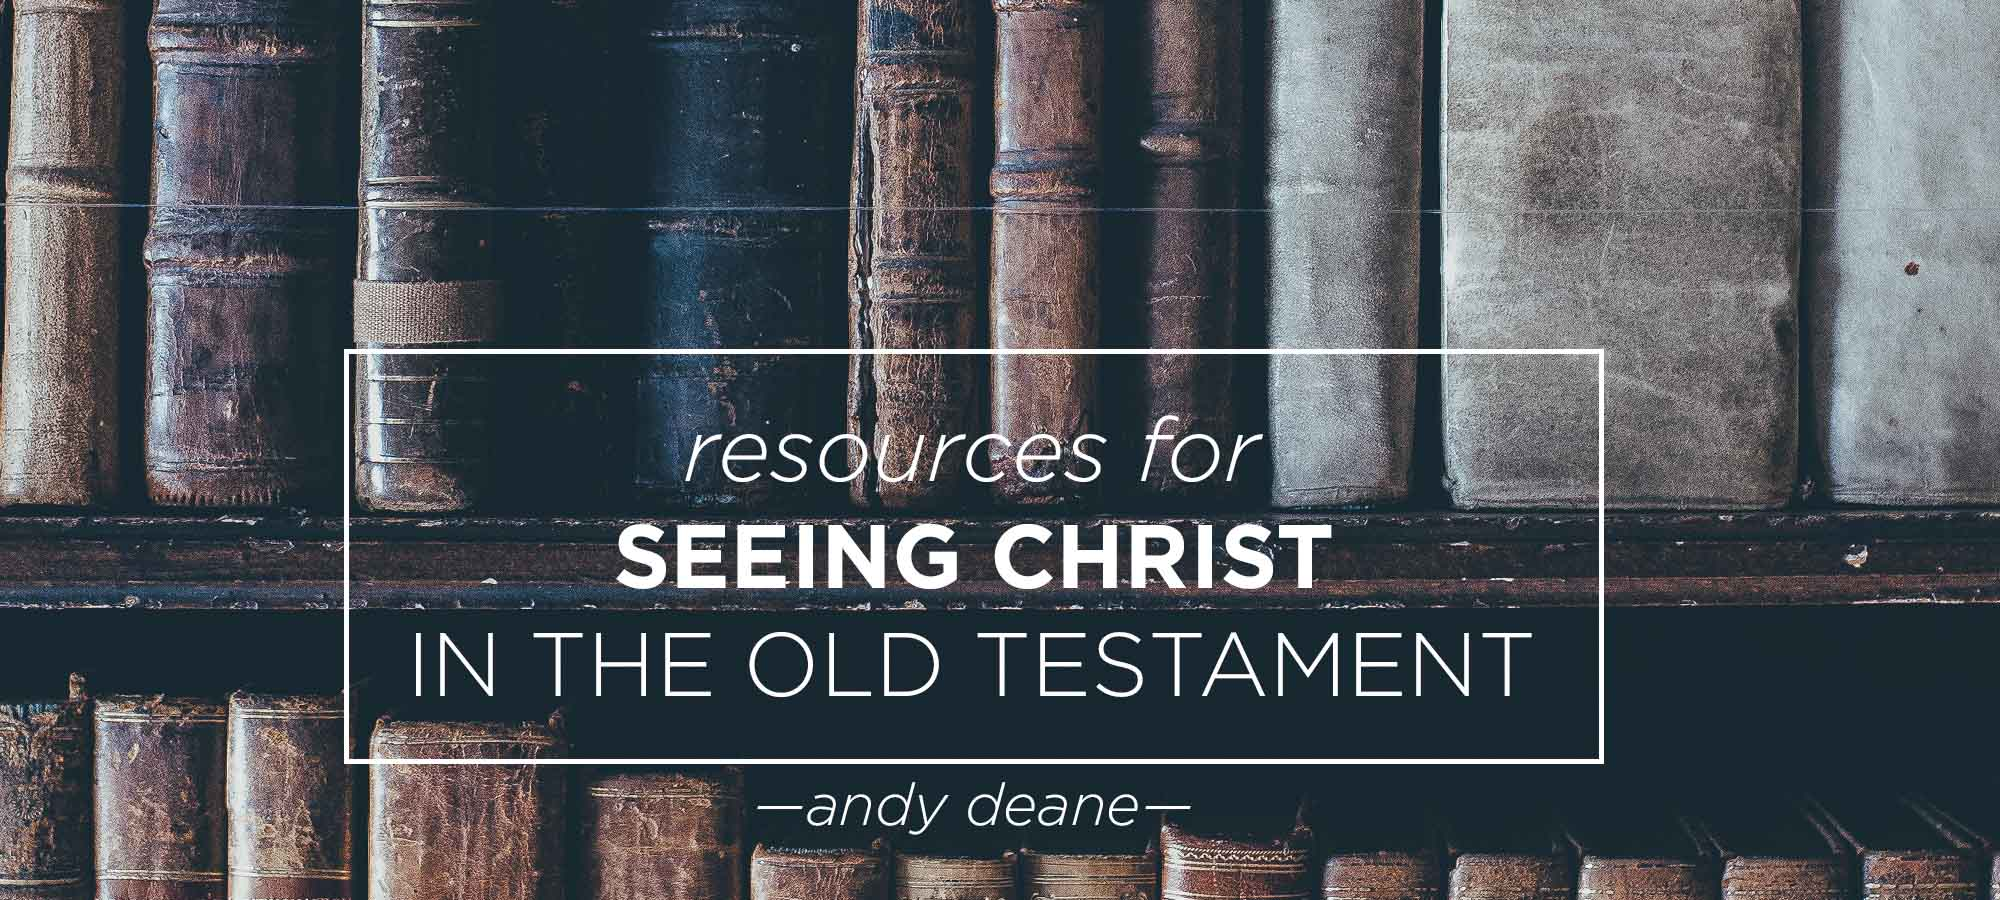 Resources for Seeing Christ in the Old Testament